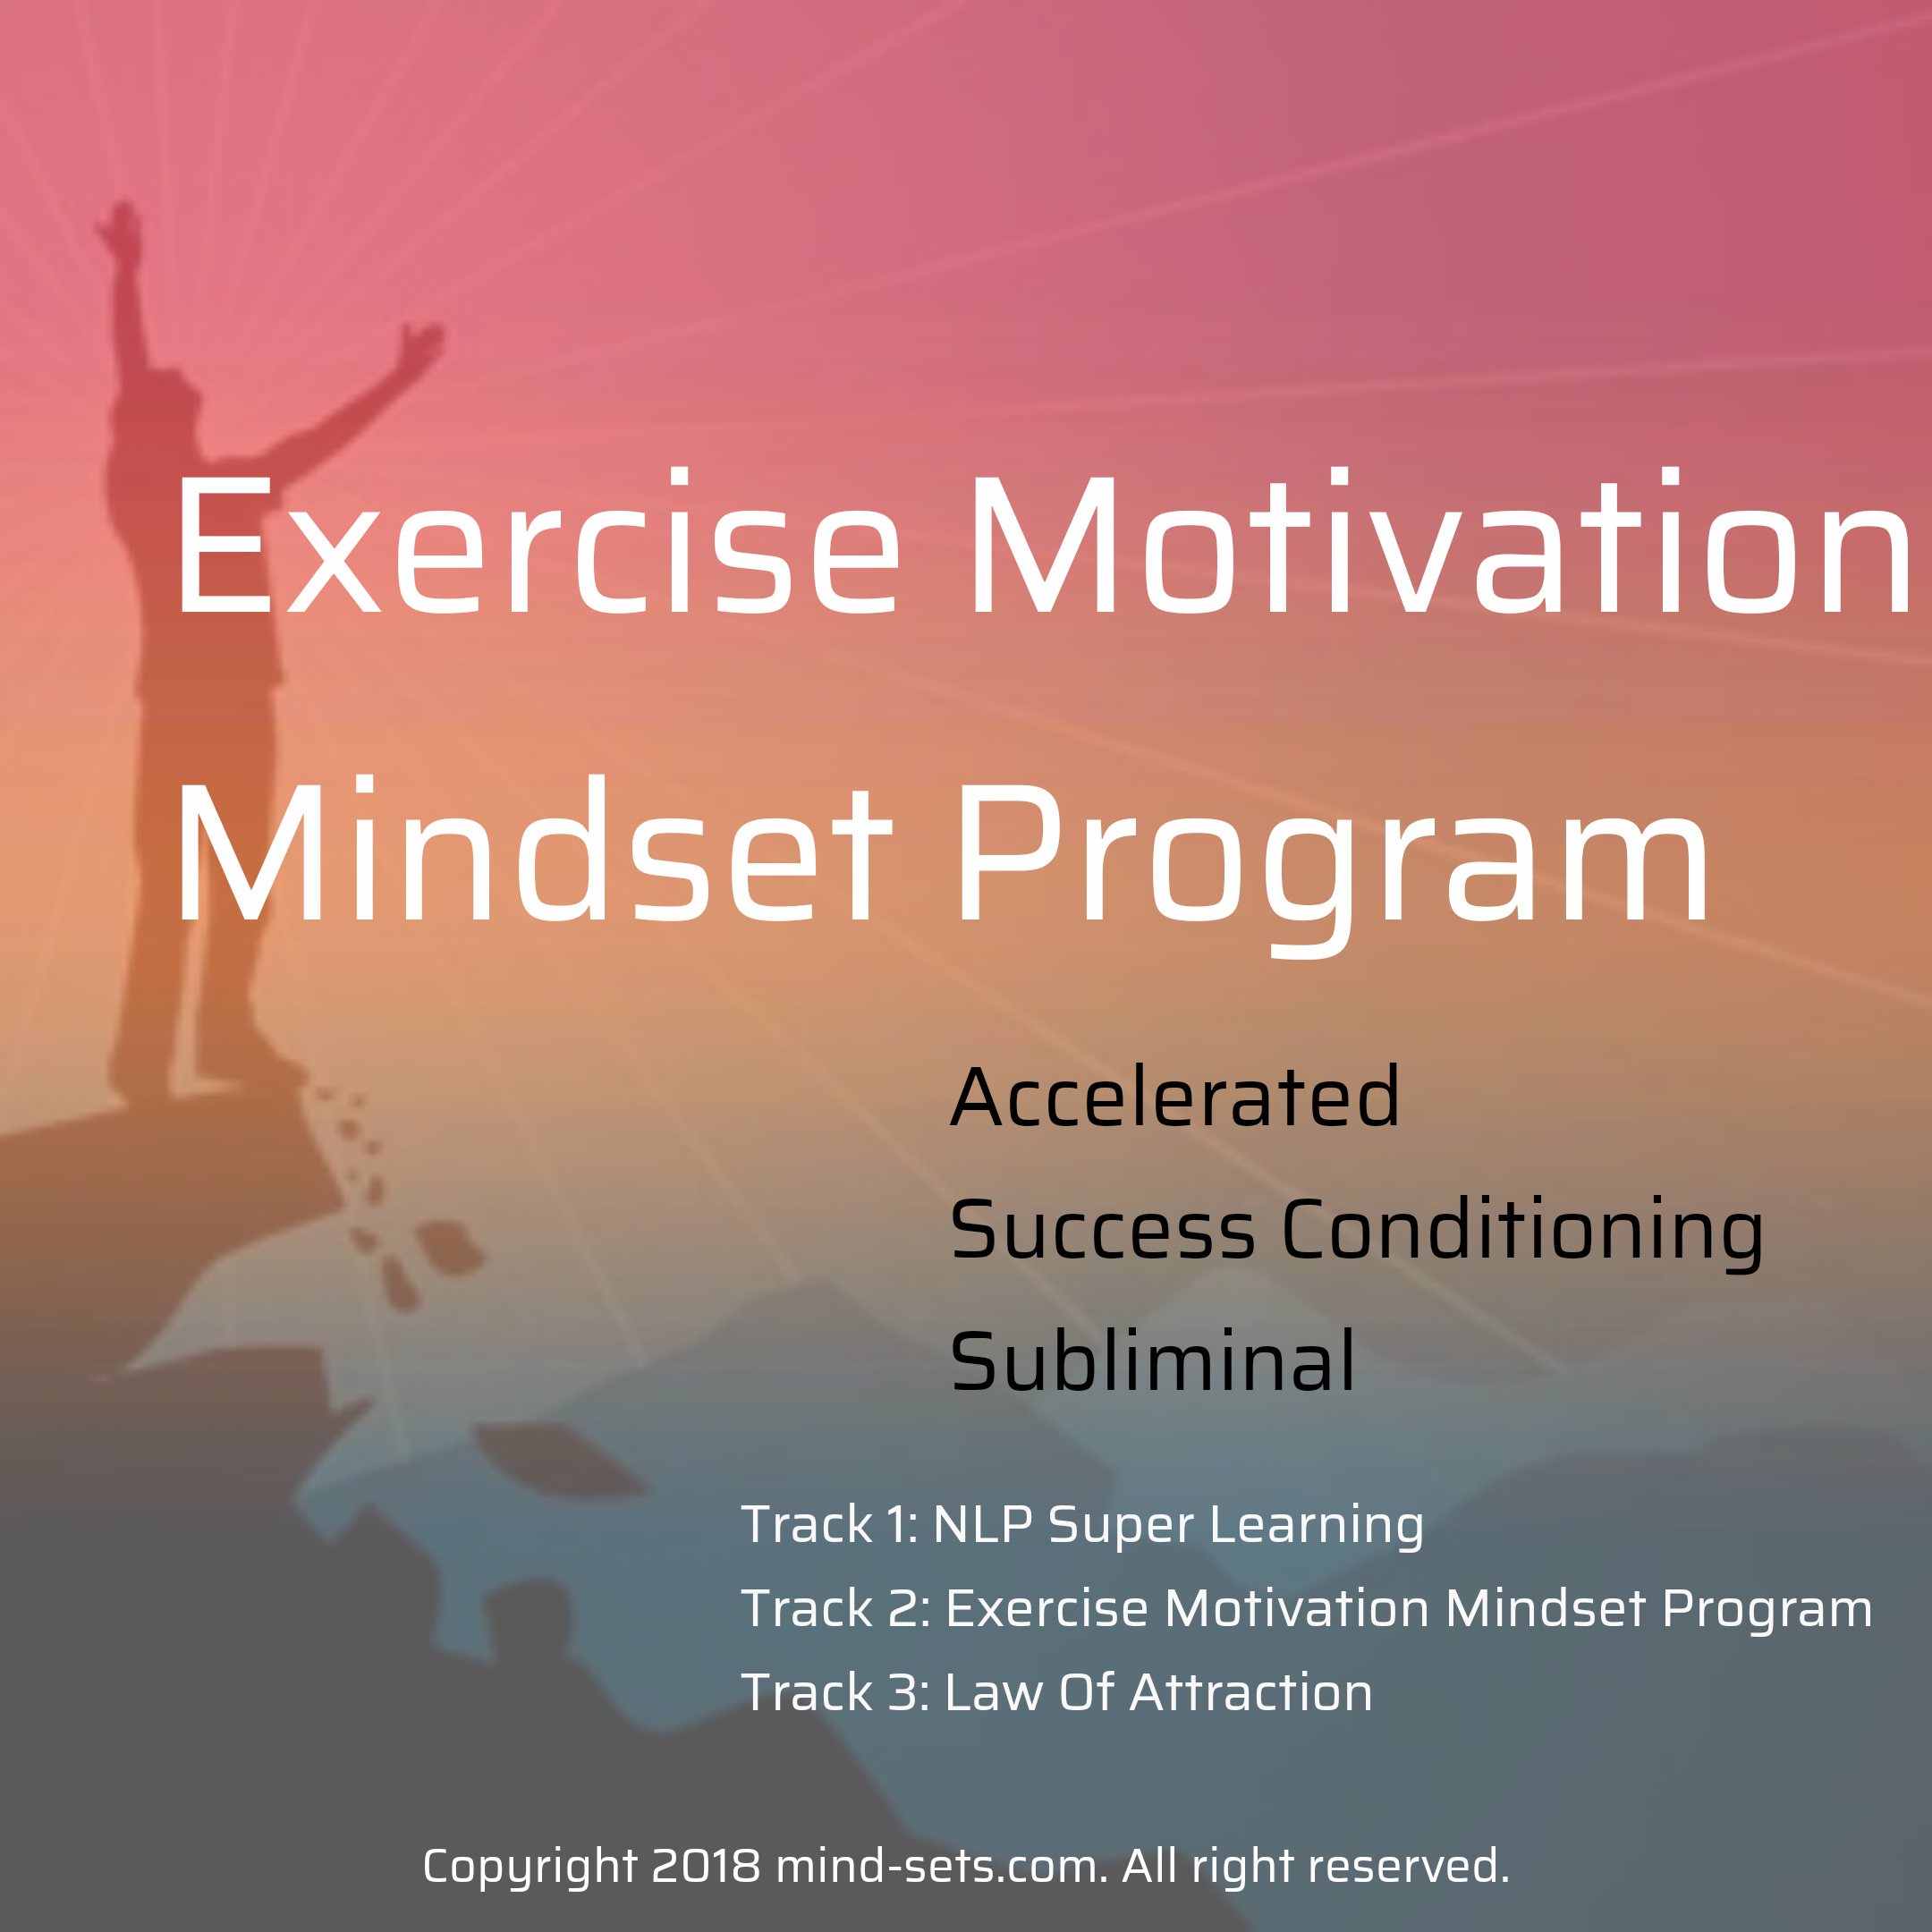 Exercise Motivation Mindset Program